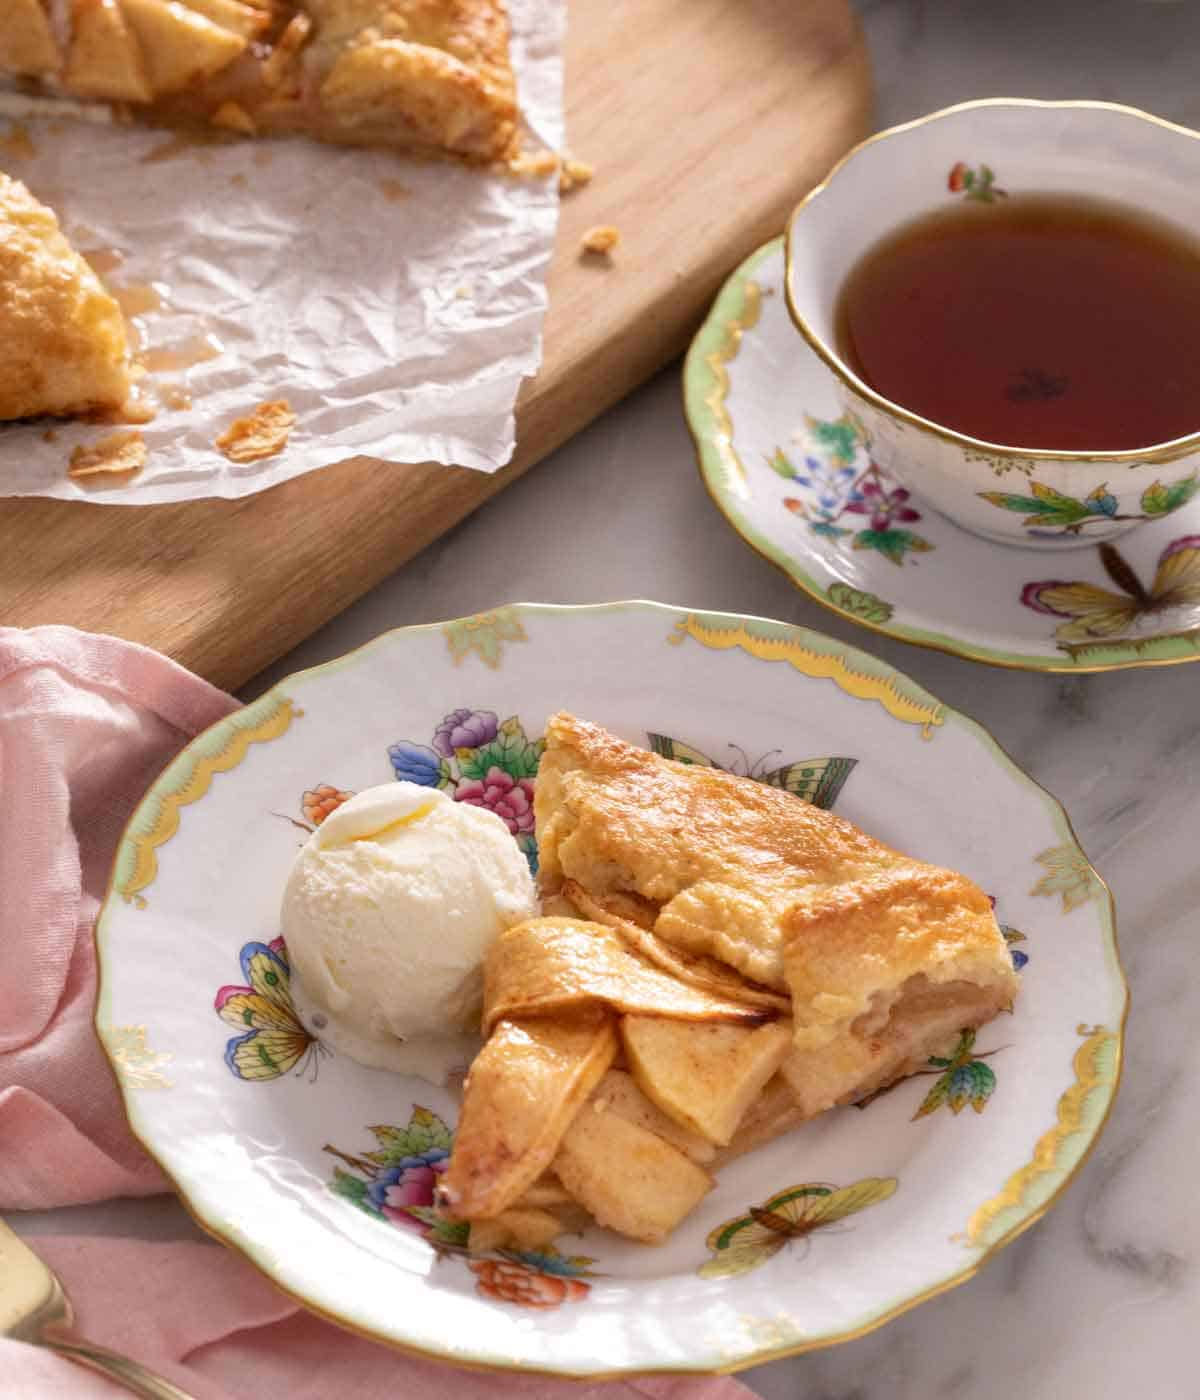 A plate with a slice of apple galette with a scoop of ice cream beside it in front of a cup of tea.